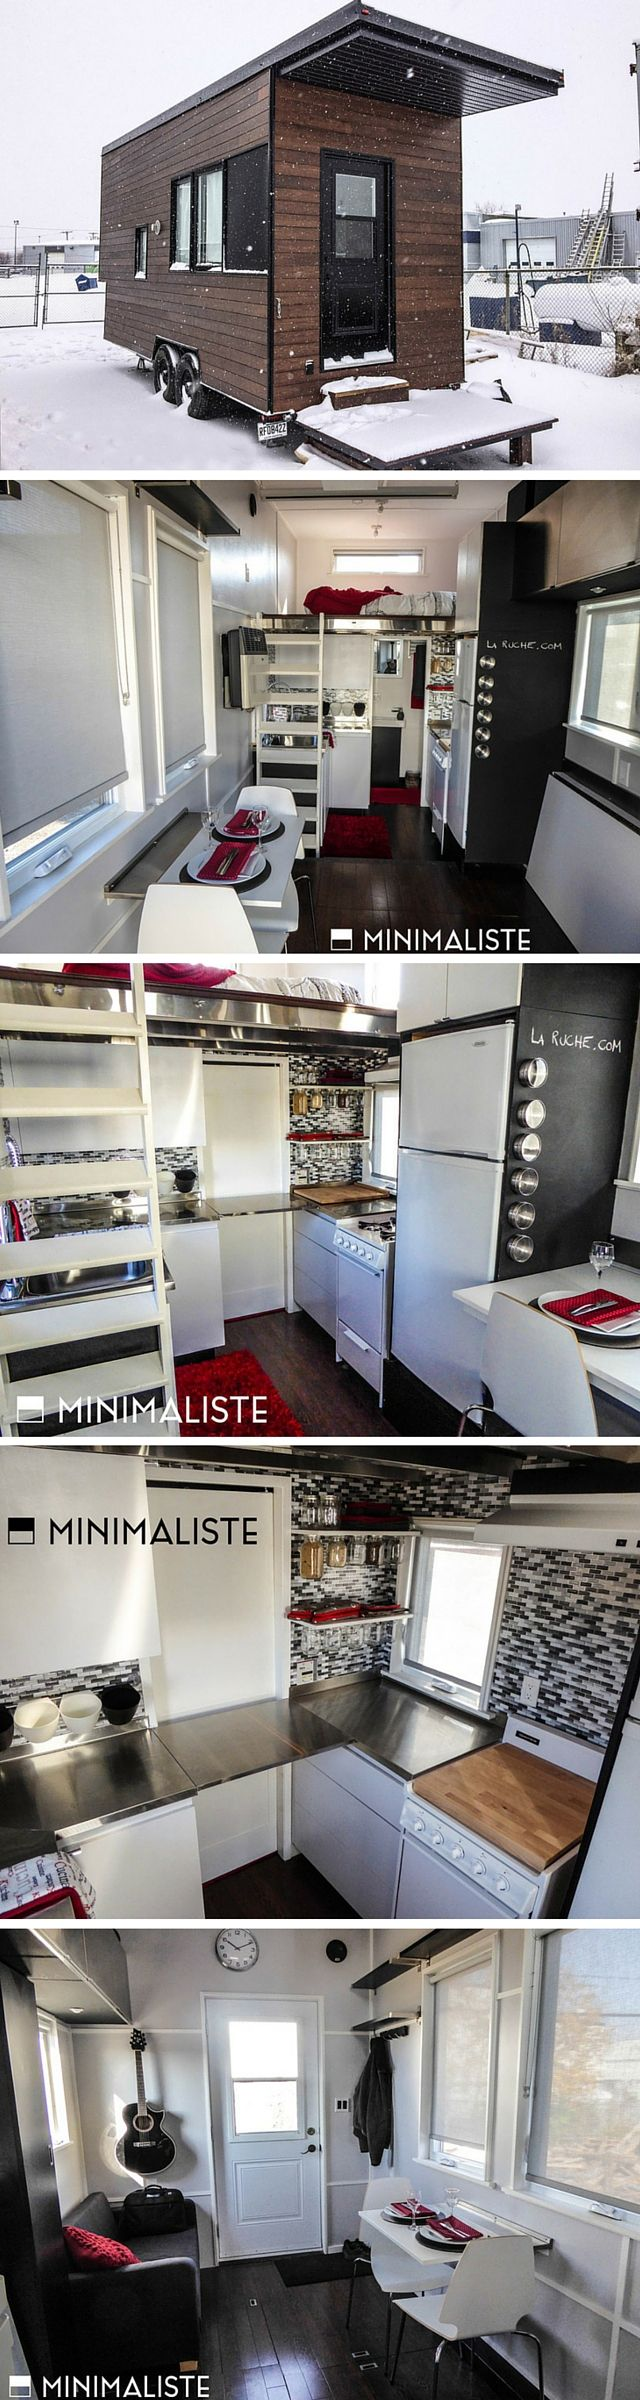 The Sequoia from Minimaliste: a 220 sq ft tiny house made in Quebec, Canada